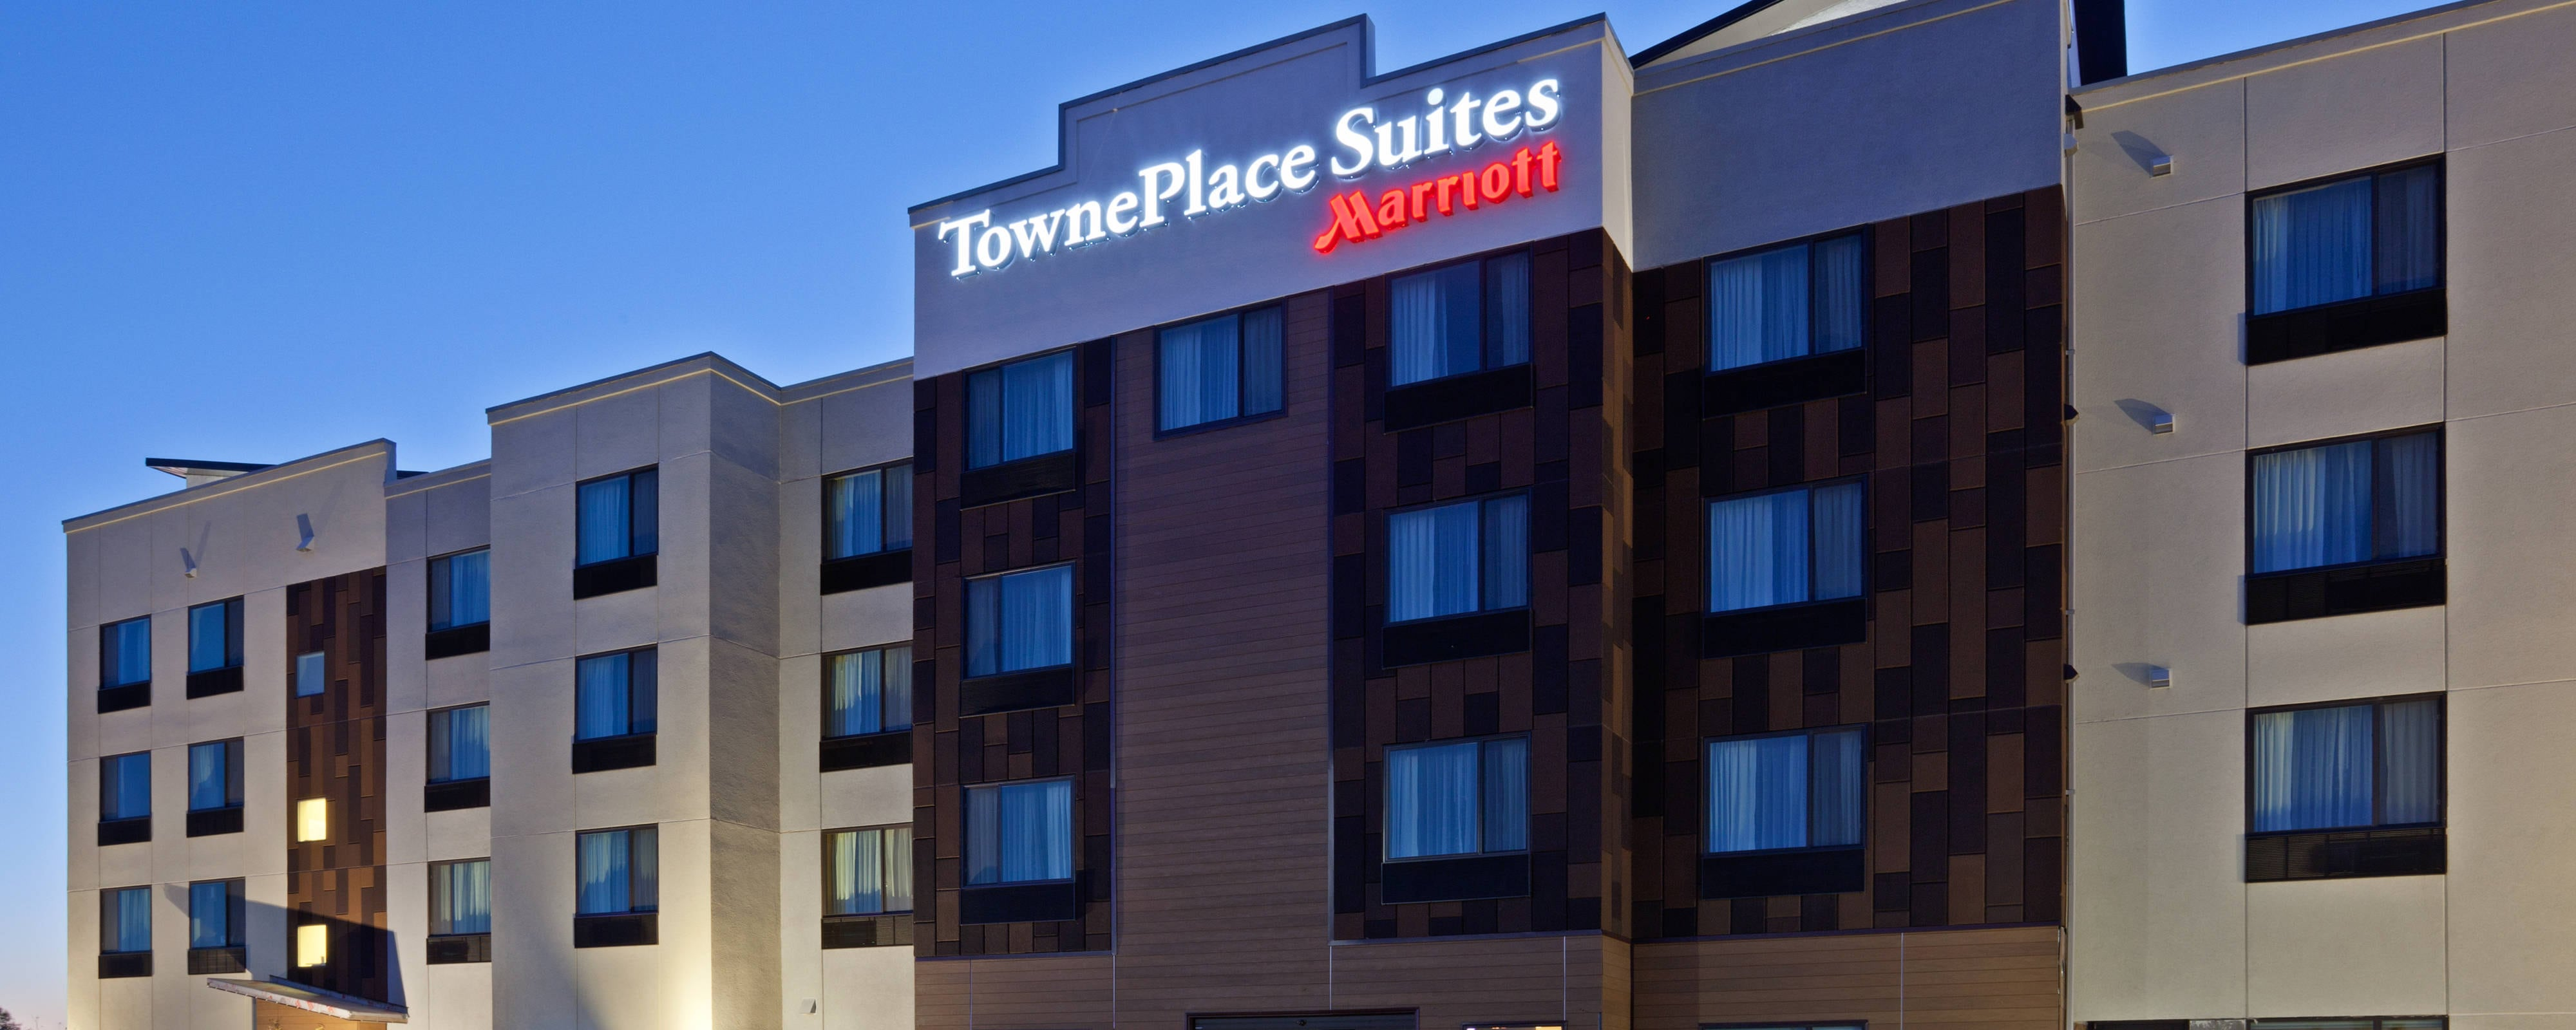 Fachada del TownePlace Suites Sioux Falls South